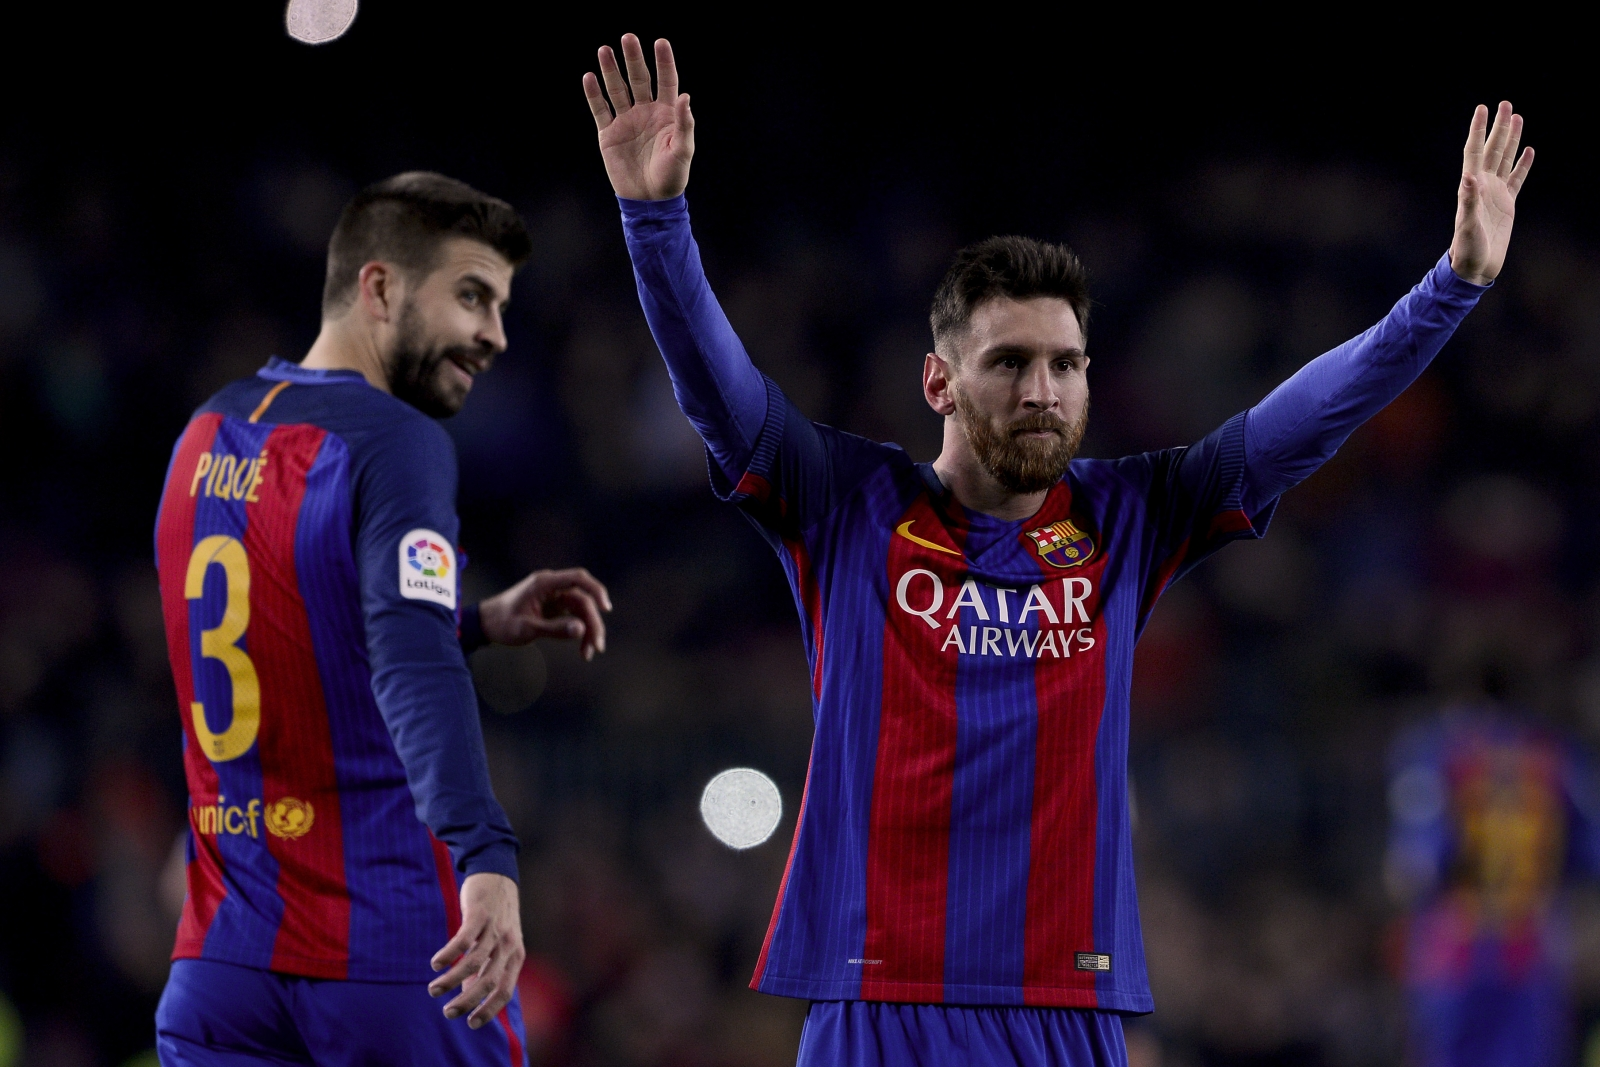 Gerard Pique and Lionel messi